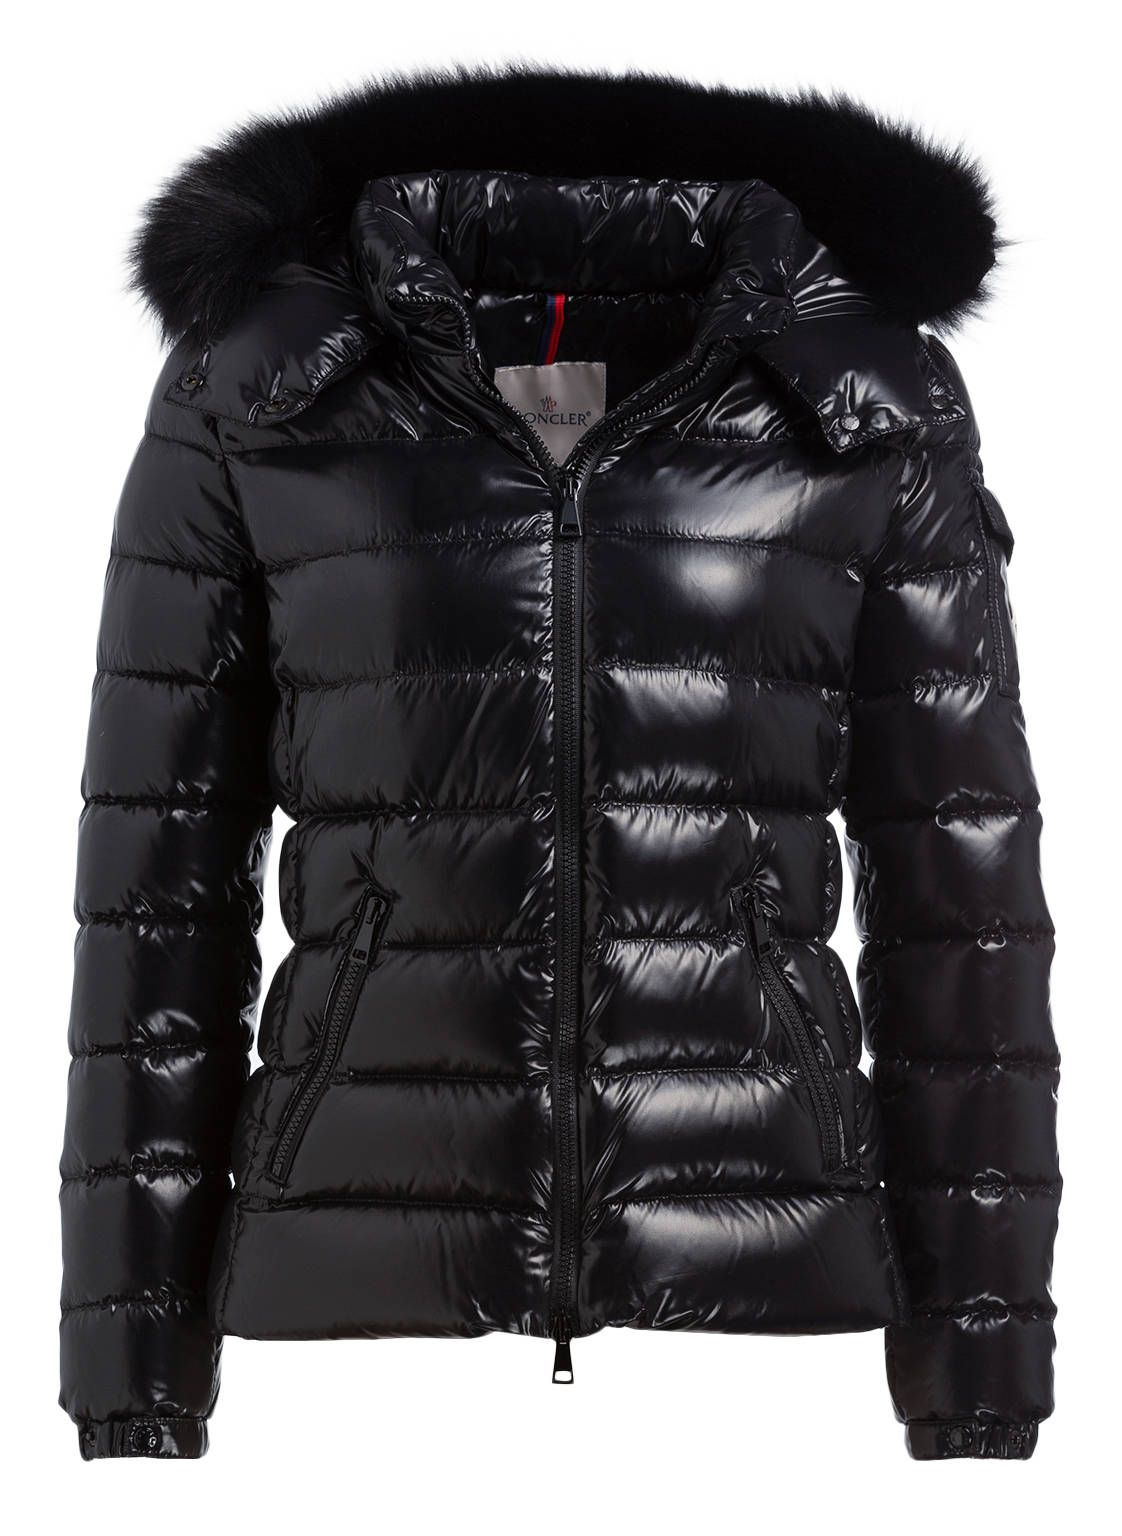 breuninger winter jacke fell damen